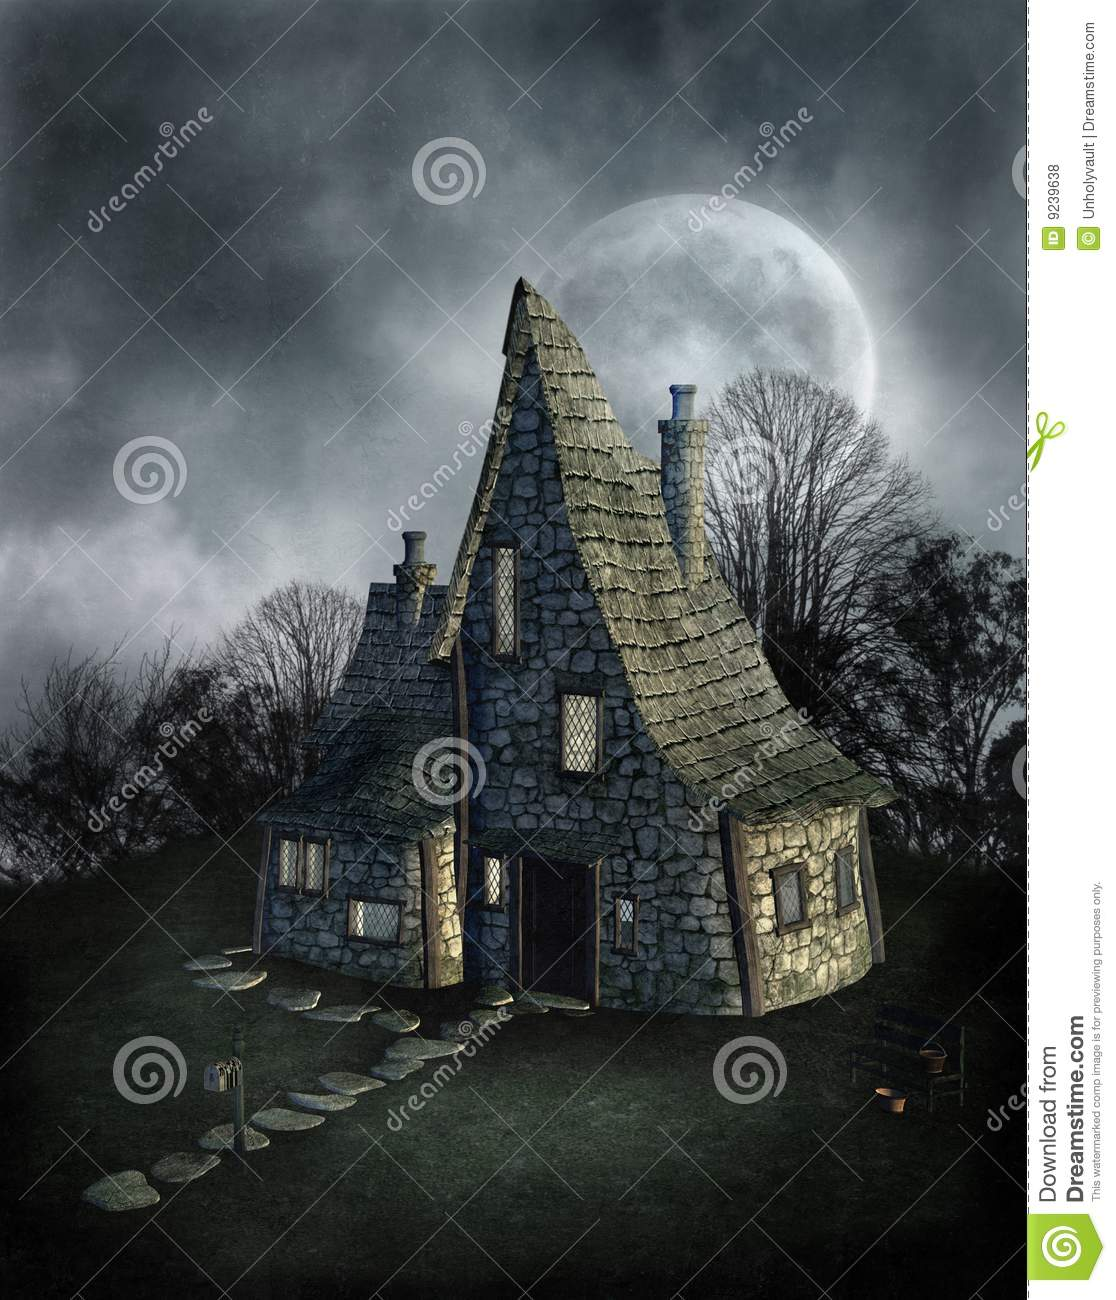 Black And White Gothic Wallpaper Gothic Scenery 69 Royalty Free Stock Photos Image 9239638